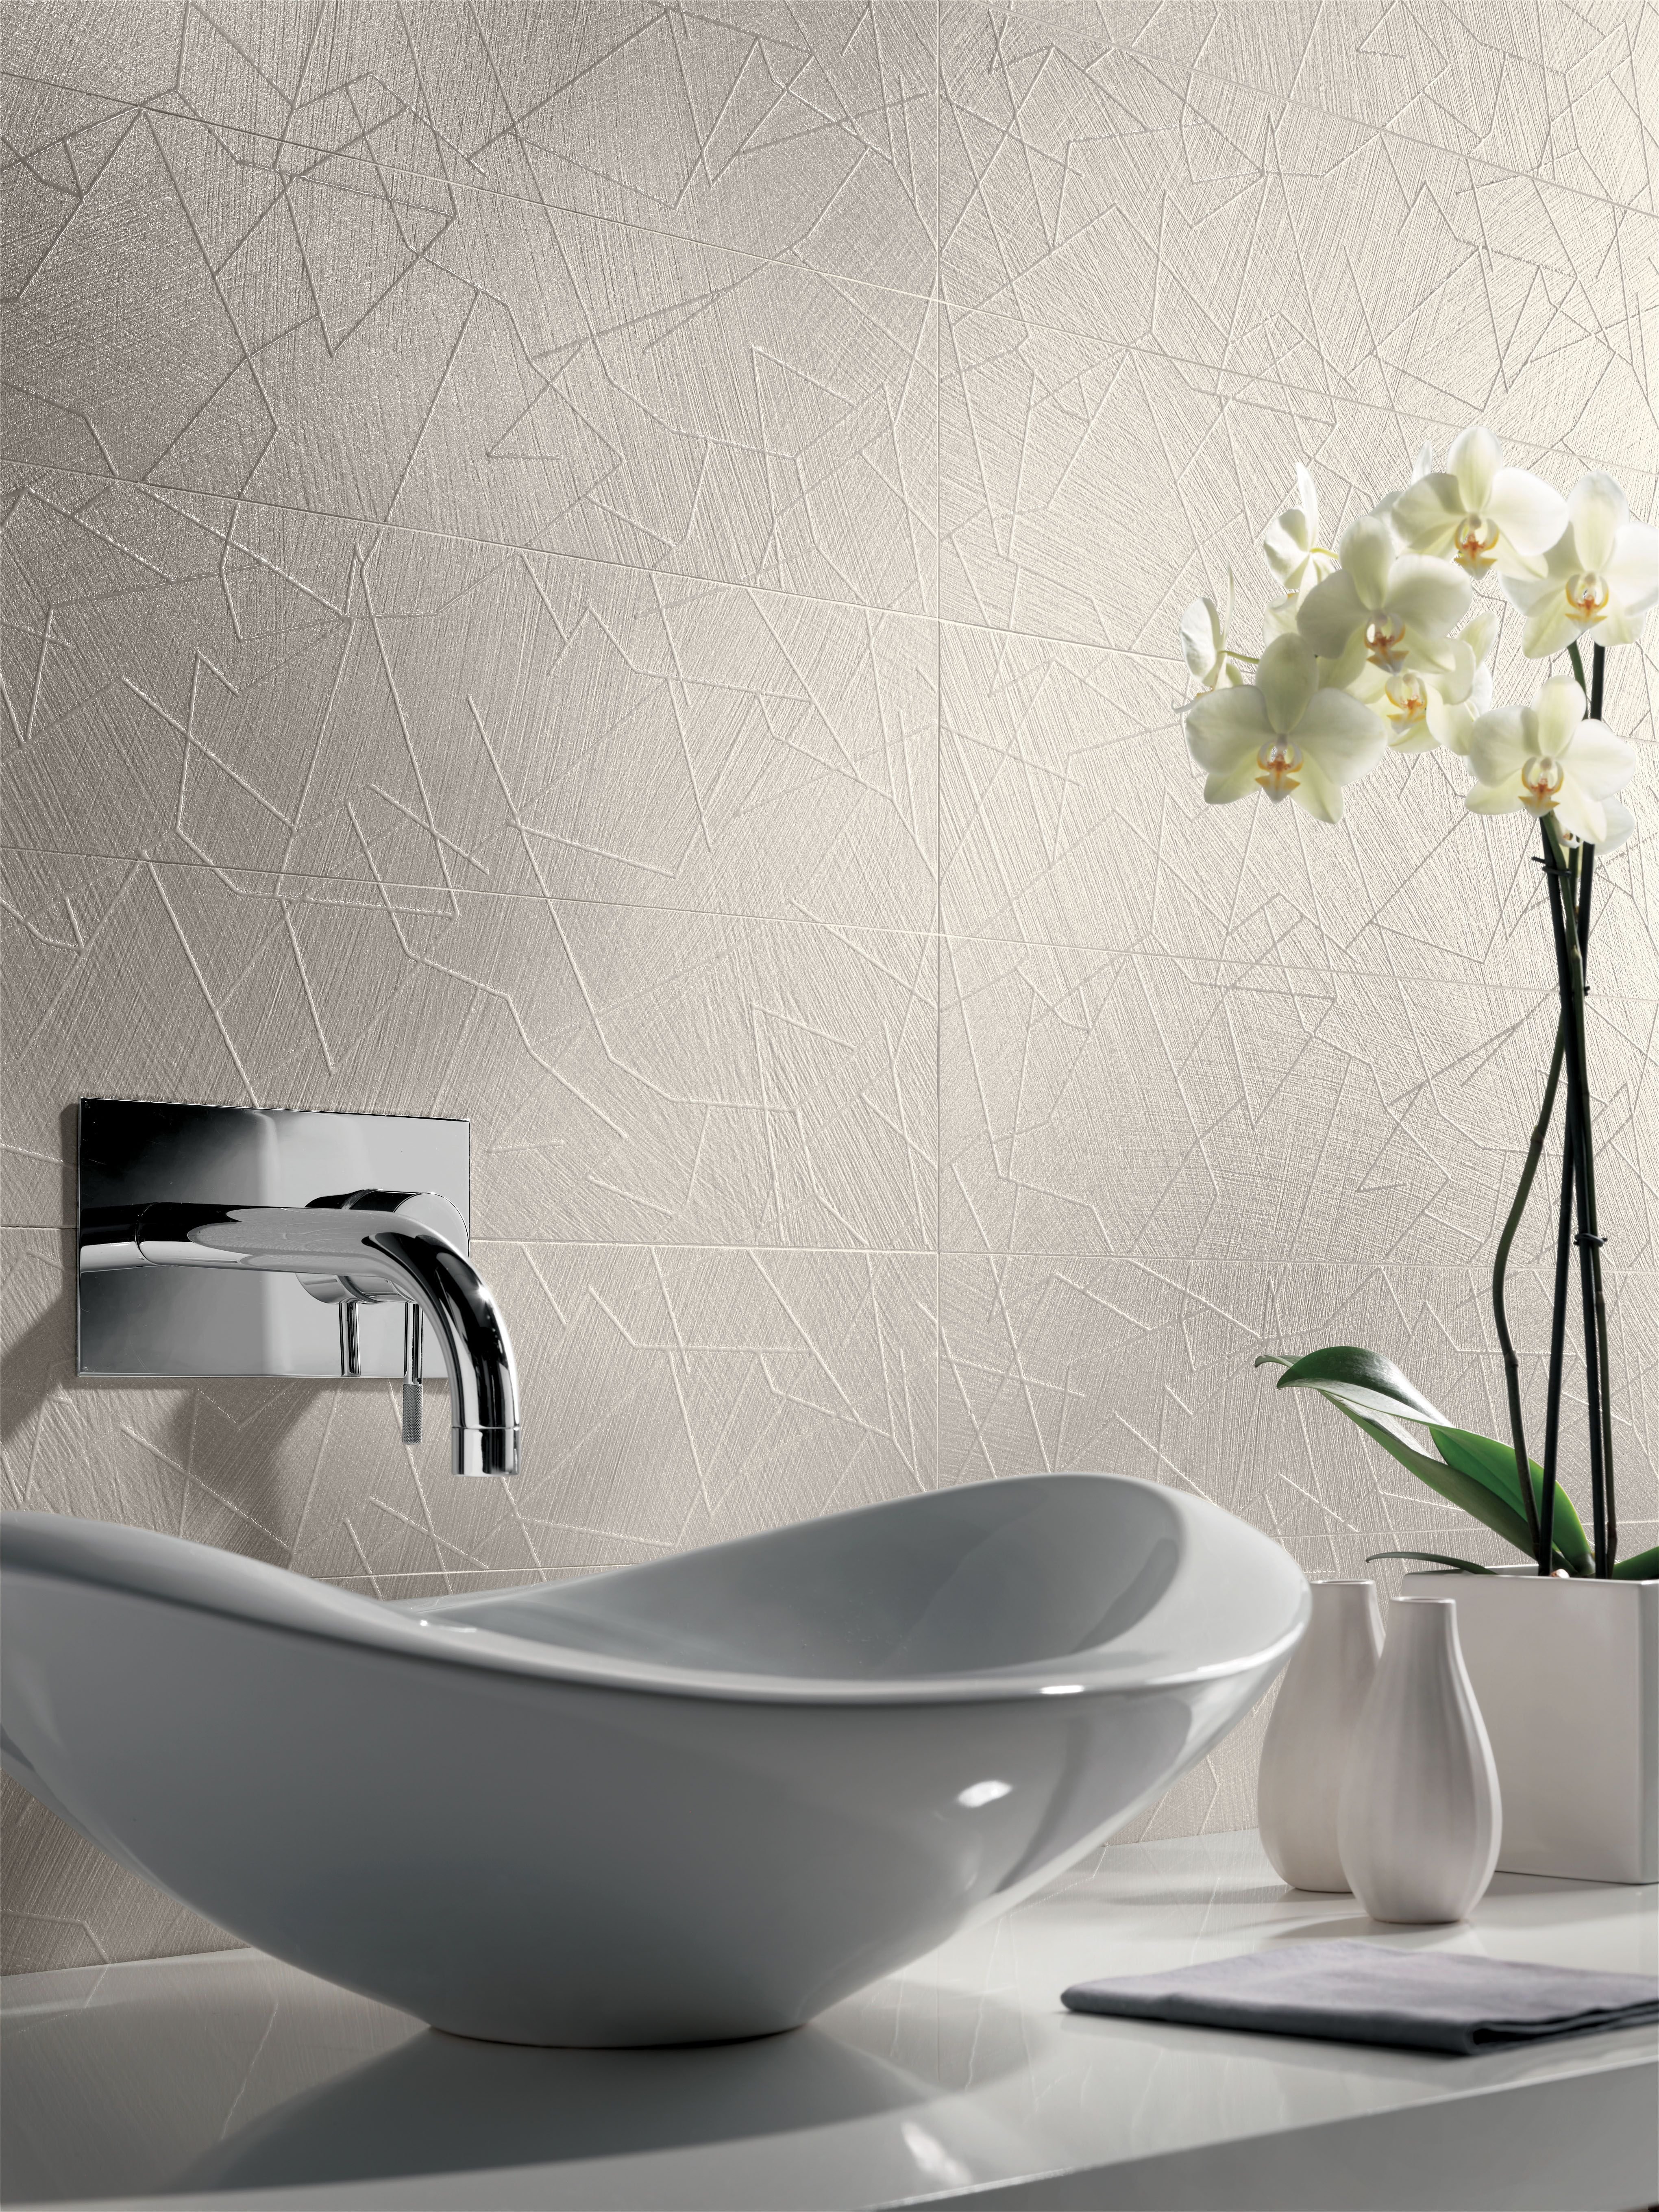 Flair.7 collection: Joy.4 - Directions 14 #tiles #living ... on and art design, and living room design, and black design, and kitchen design,